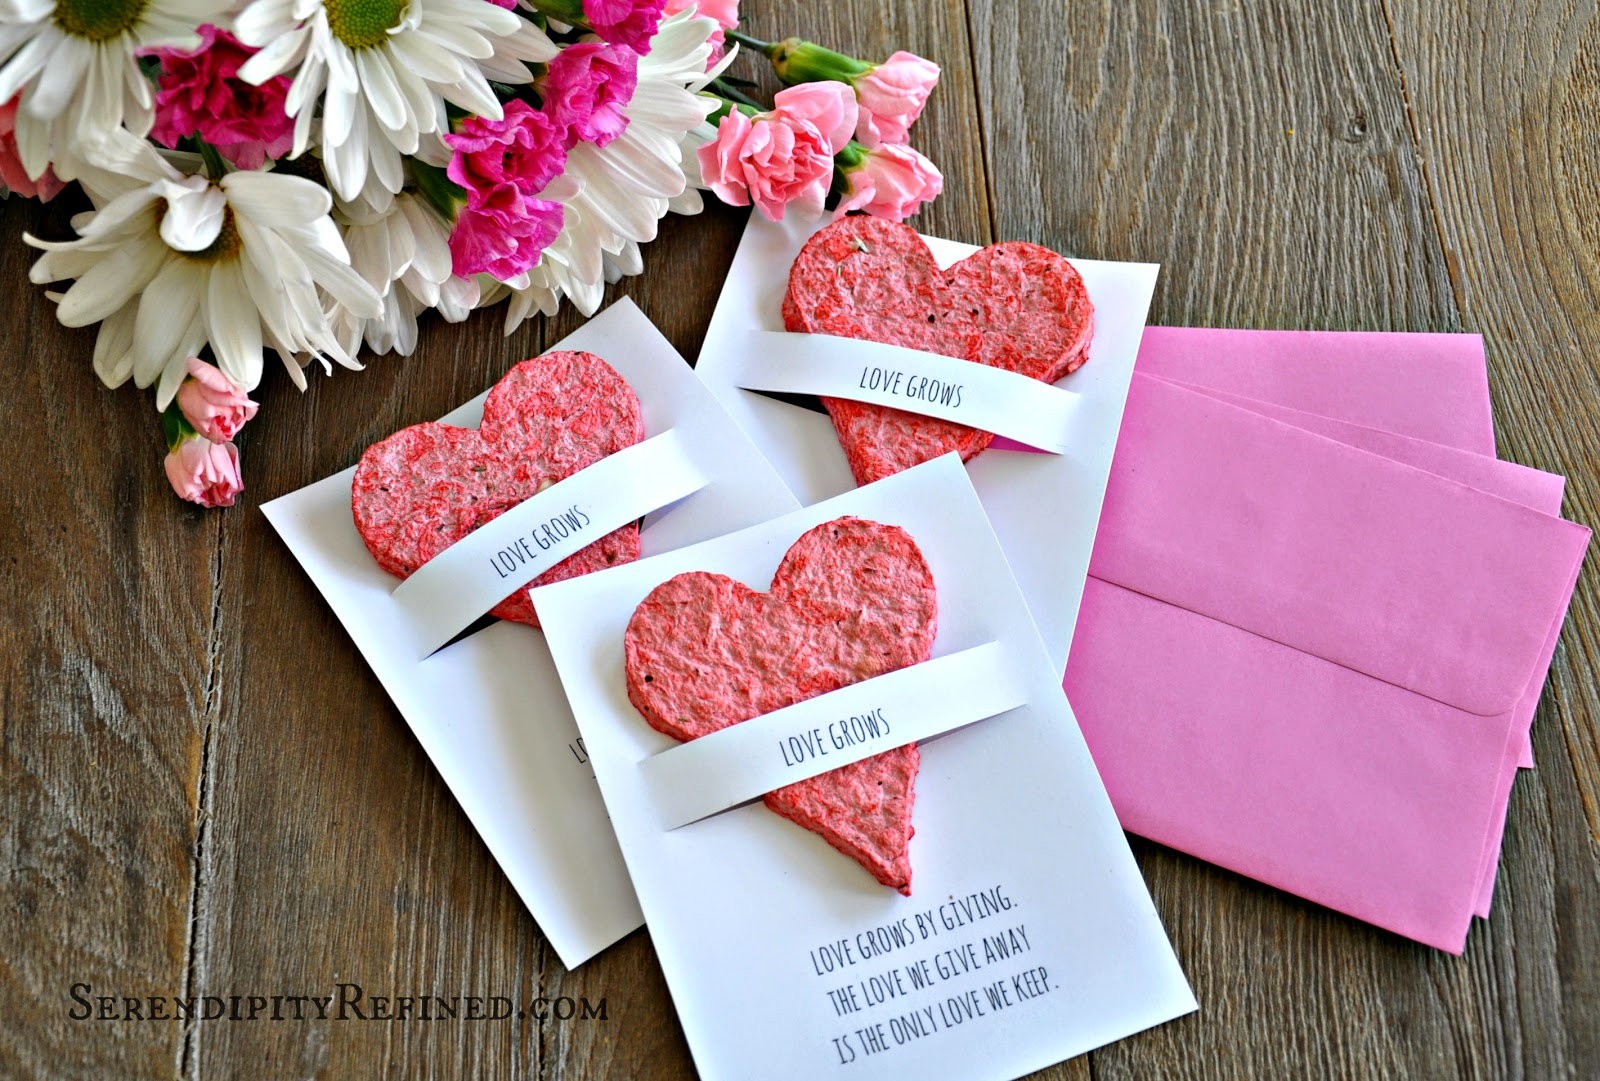 Home Made Paper Valentine Shower Favor Wedding Heart Seed Flower Diy Tutorial Favors Gardenoflove Rustic T1441115070